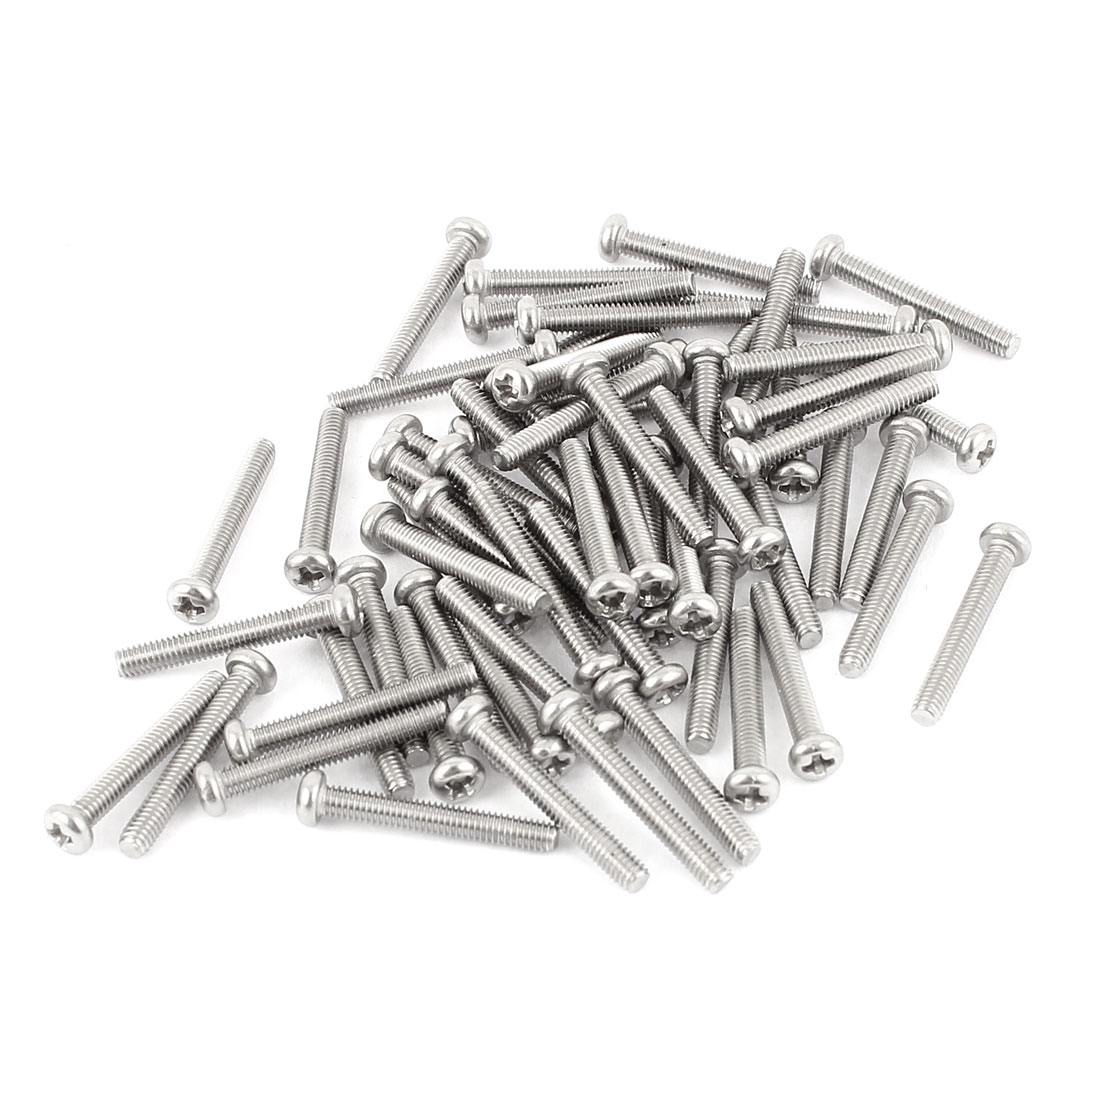 M2.5 x 18mm 304 Stainless Steel Crosshead Phillips Round Head Screws Bolt 60pcs